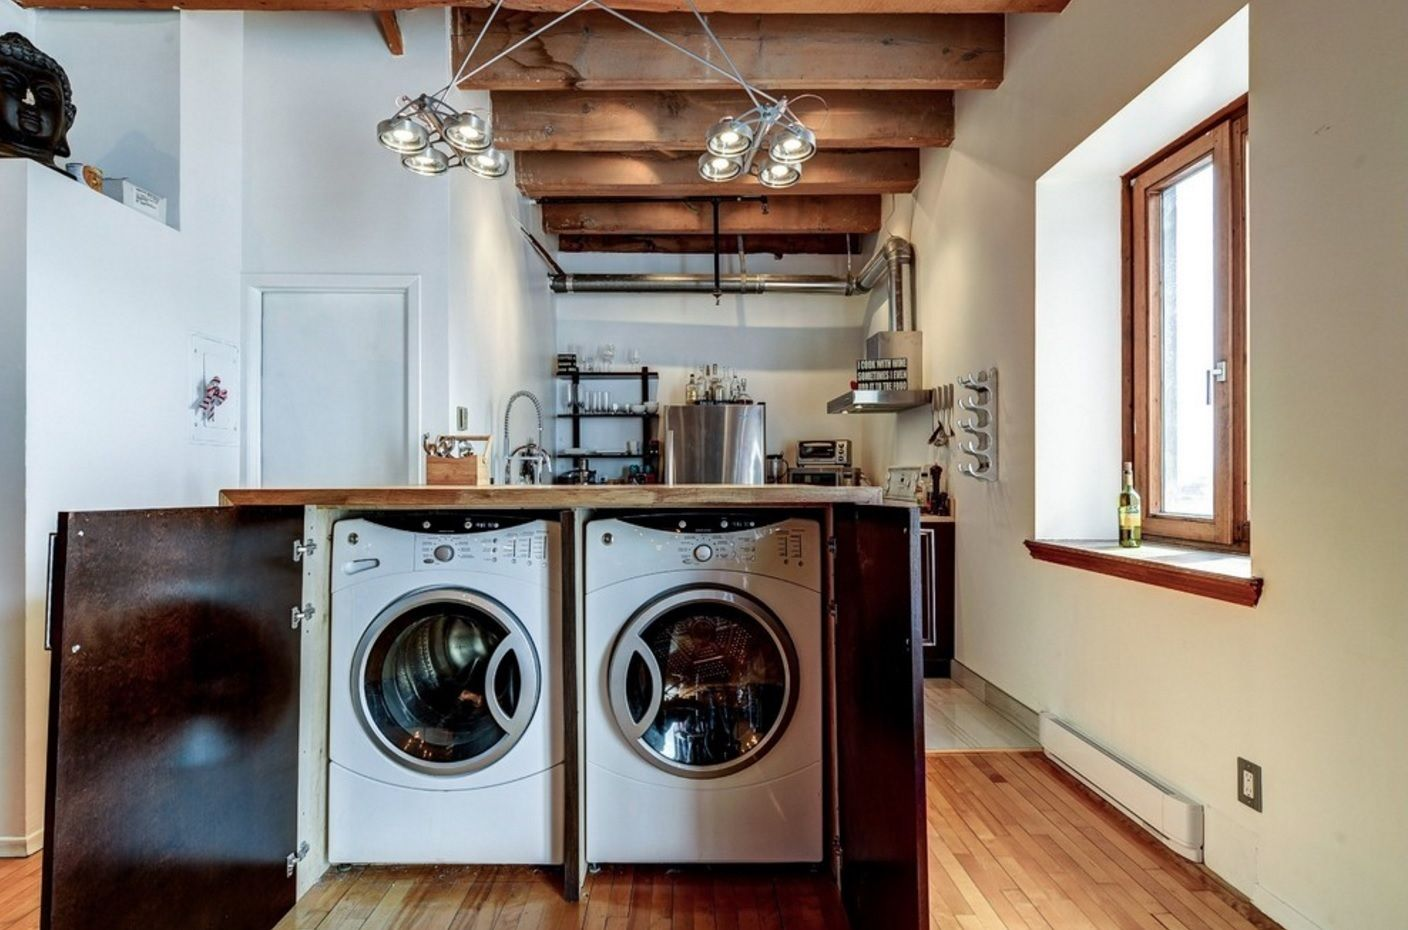 Laundry & Kitchen Functional Space Combination. Storage for appliances right in the kitchen island